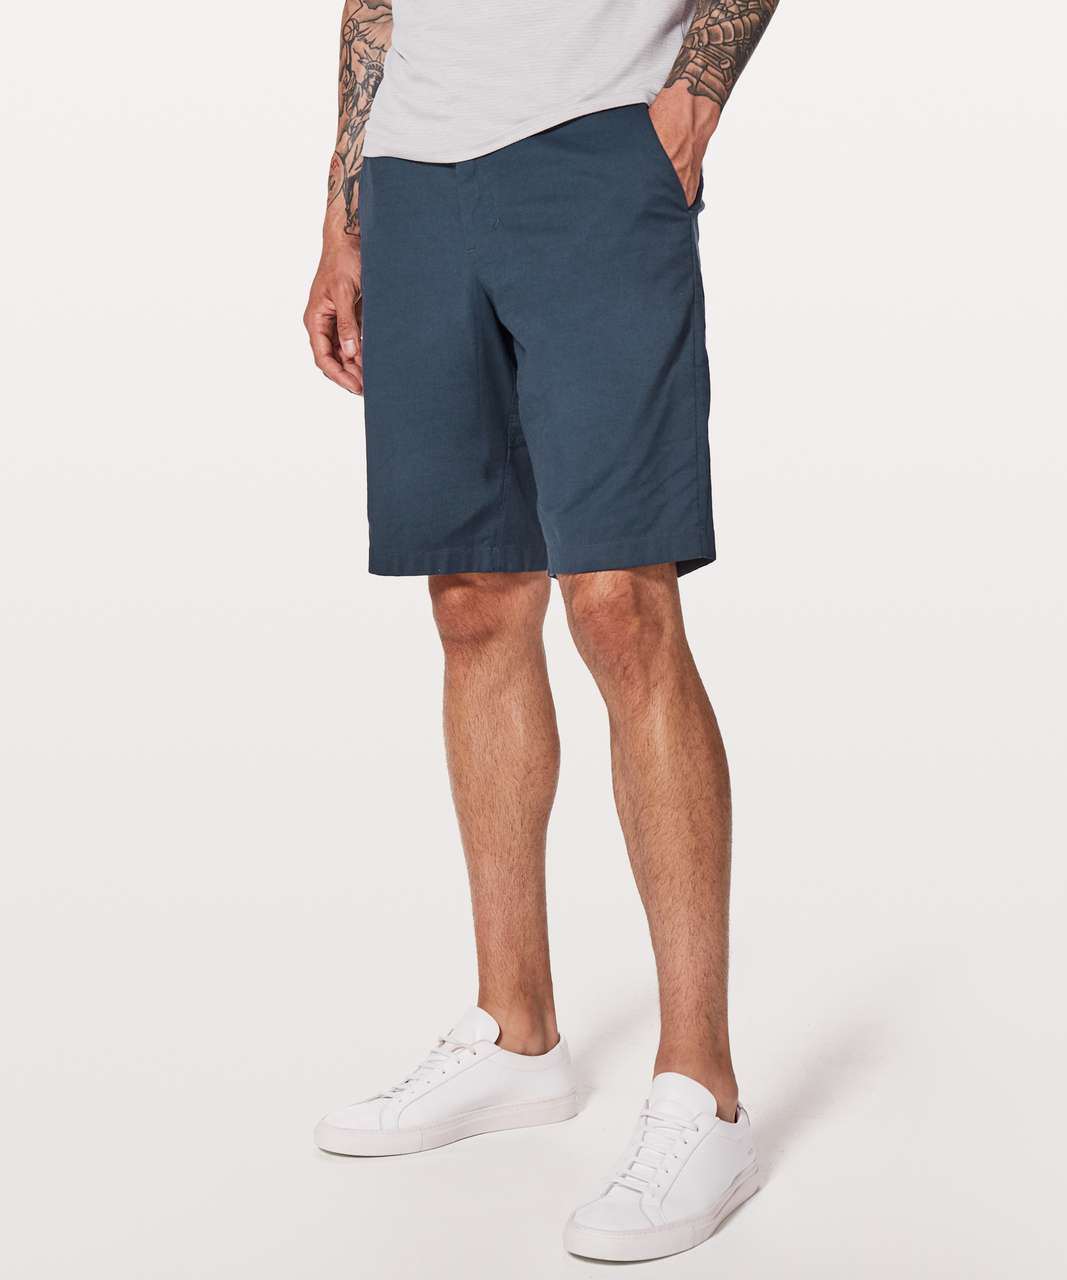 "Lululemon Commission Short Relaxed *Qwick Oxford 11"" - Mach Blue / True Navy"